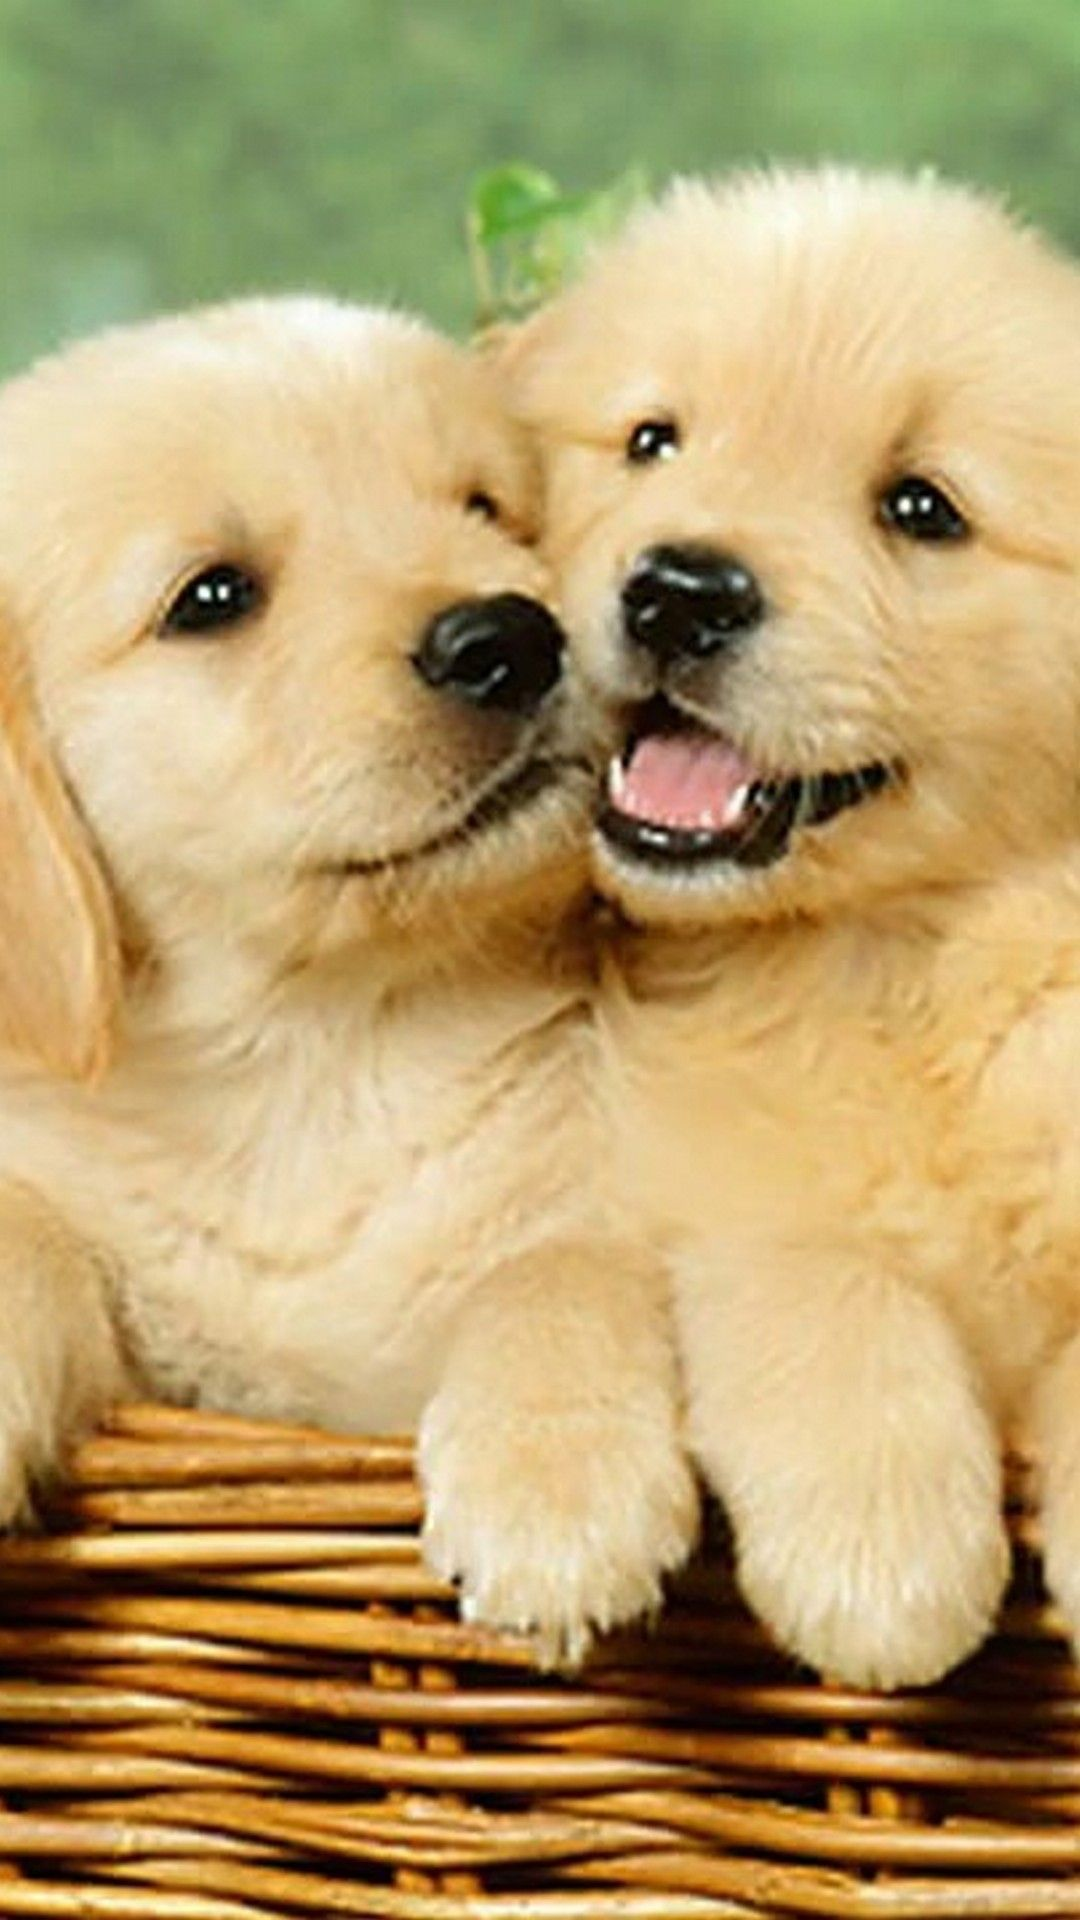 Cute Puppy Iphone Wallpapers Top Free Cute Puppy Iphone Backgrounds Wallpaperaccess